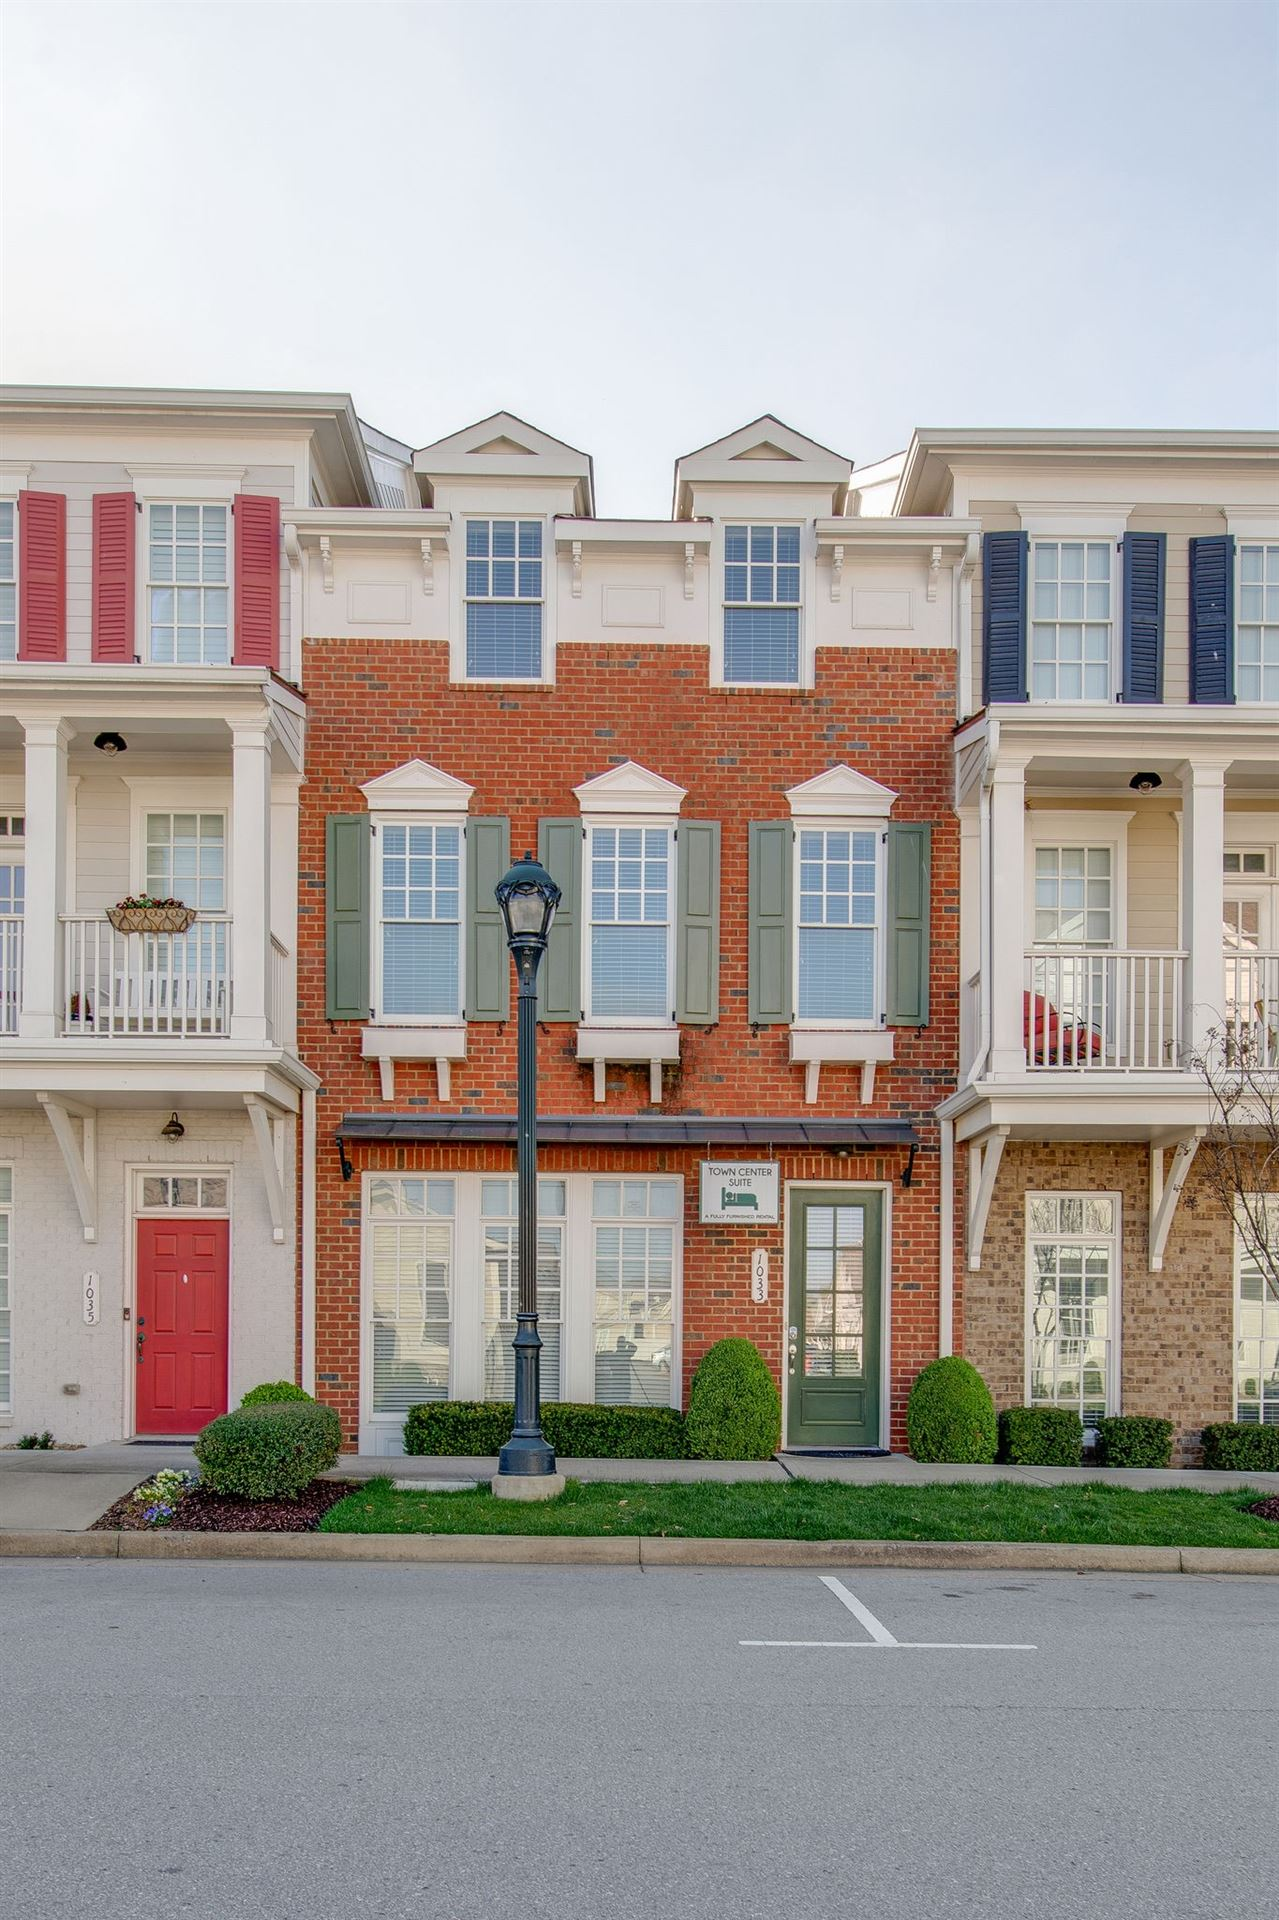 Photo of 1033 Westhaven Blvd, Franklin, TN 37064 (MLS # 2135639)